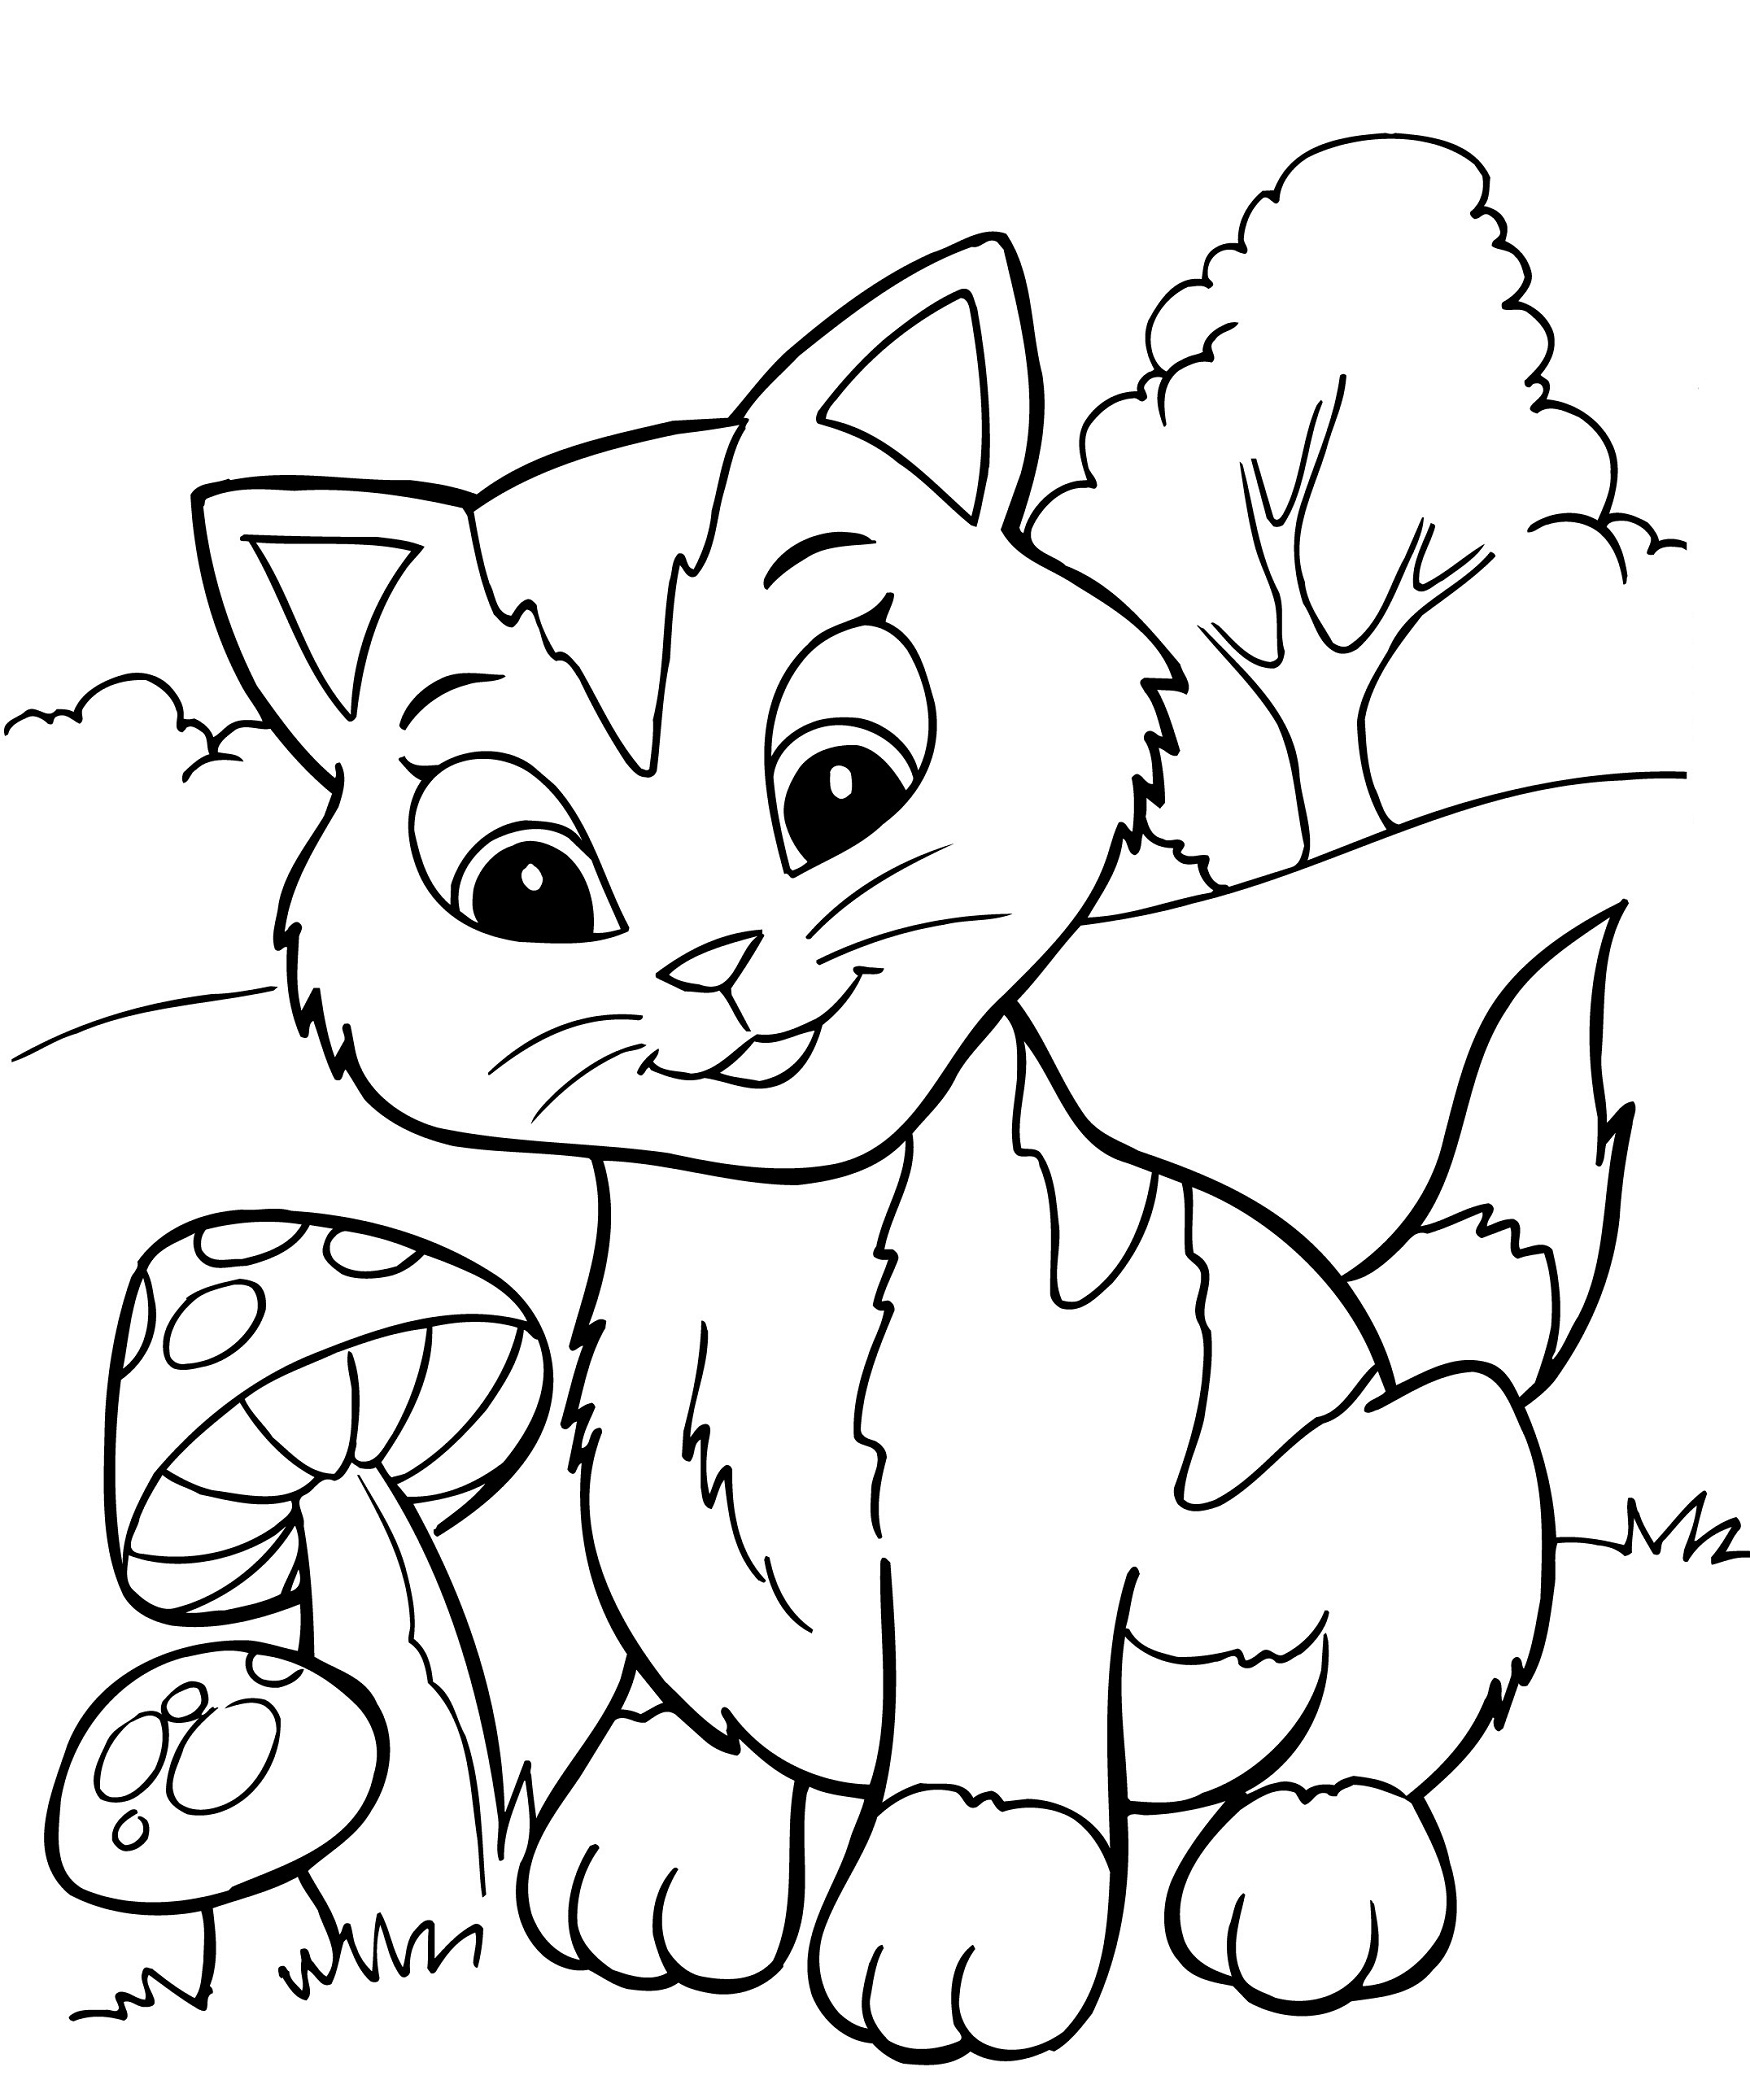 Free printable kitten coloring pages for kids best for Coloring page book